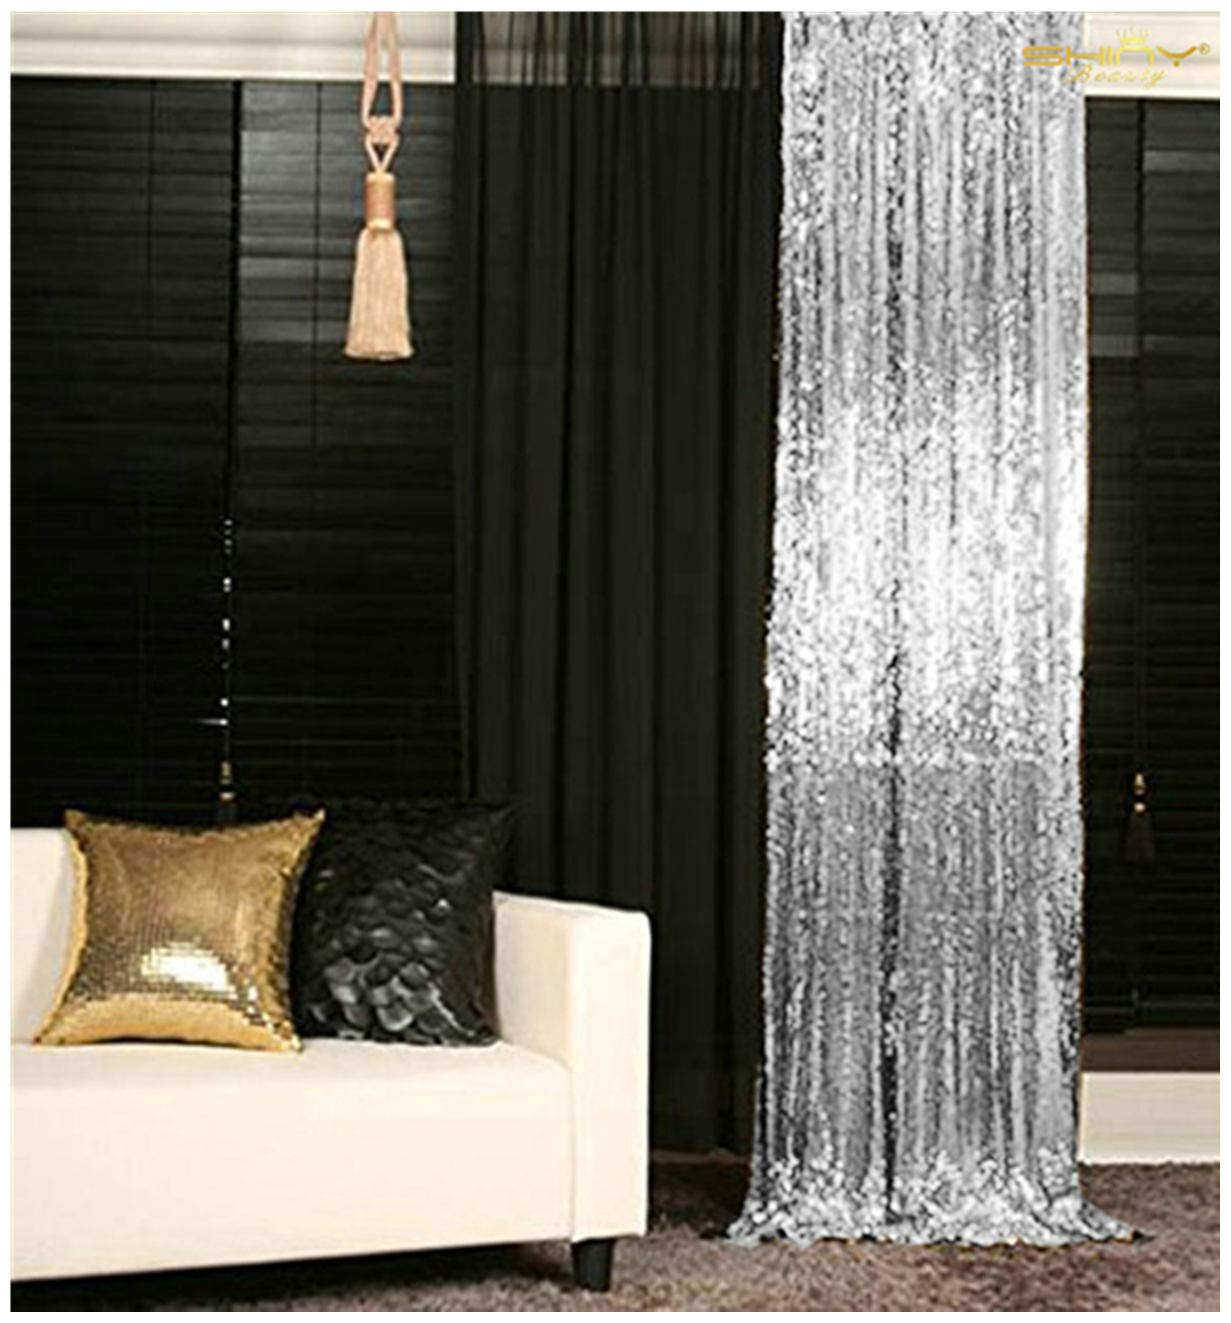 Sequin Curtain Backdrop 2 Panels 5FTx10FT Silver Glitter Backdrop Curtain Silver Sequin Backdrop for Photo Booth-190530E